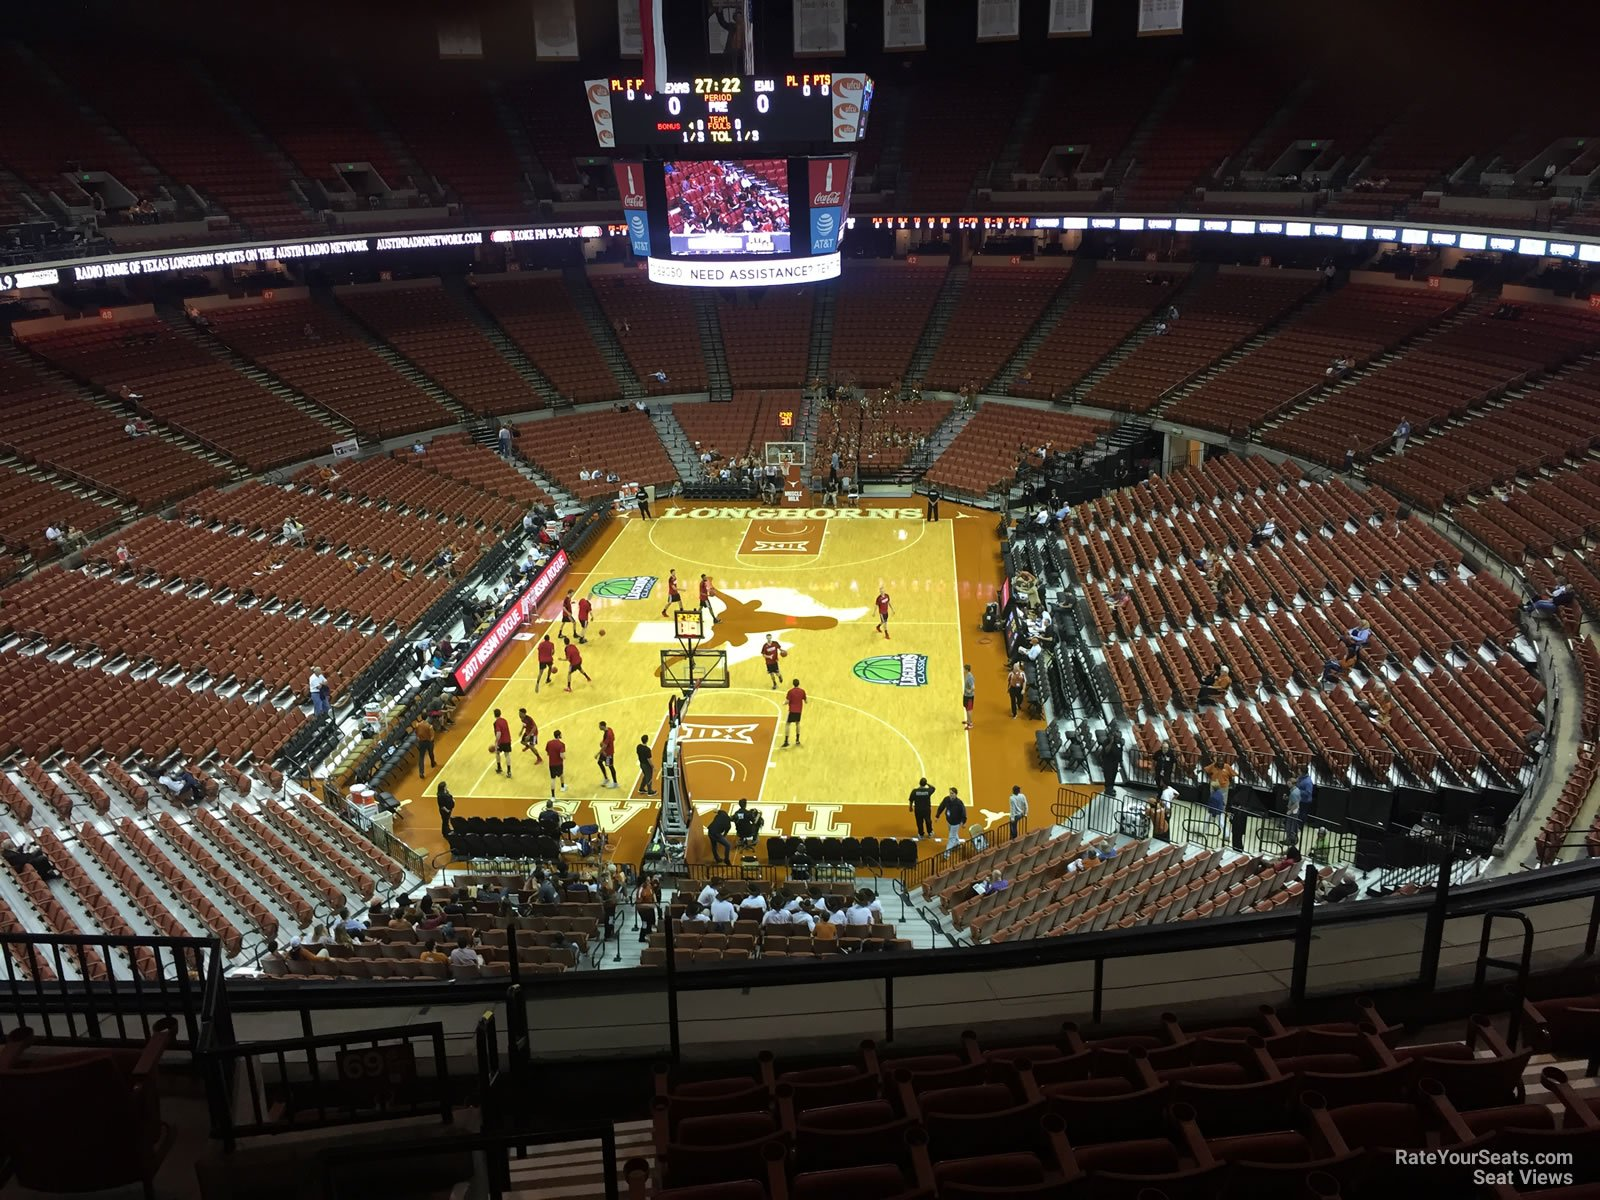 Seat View for Frank Erwin Center Section 70, Row 8